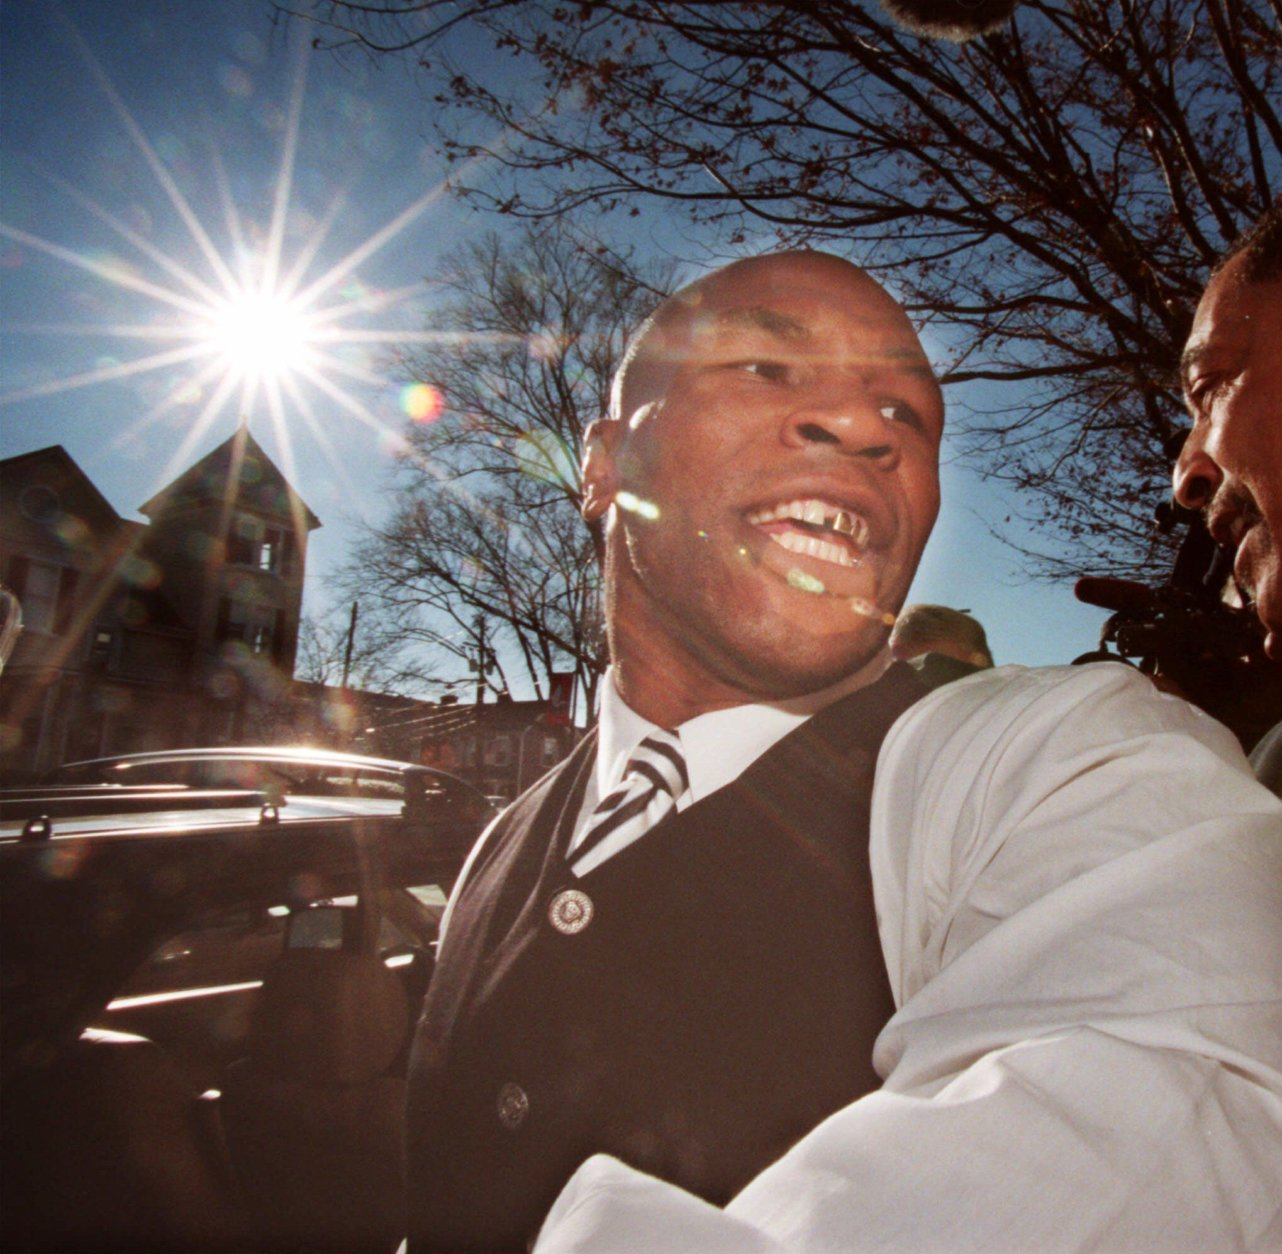 Former heavyweight champion Mike Tyson leaves court in Rockville, Md. Tuesday Dec. 1, 1998 after pleading no contest at his trial on two assault charges in connection with an August automobile accident. (AP Photo/Leslie E. Kossoff)